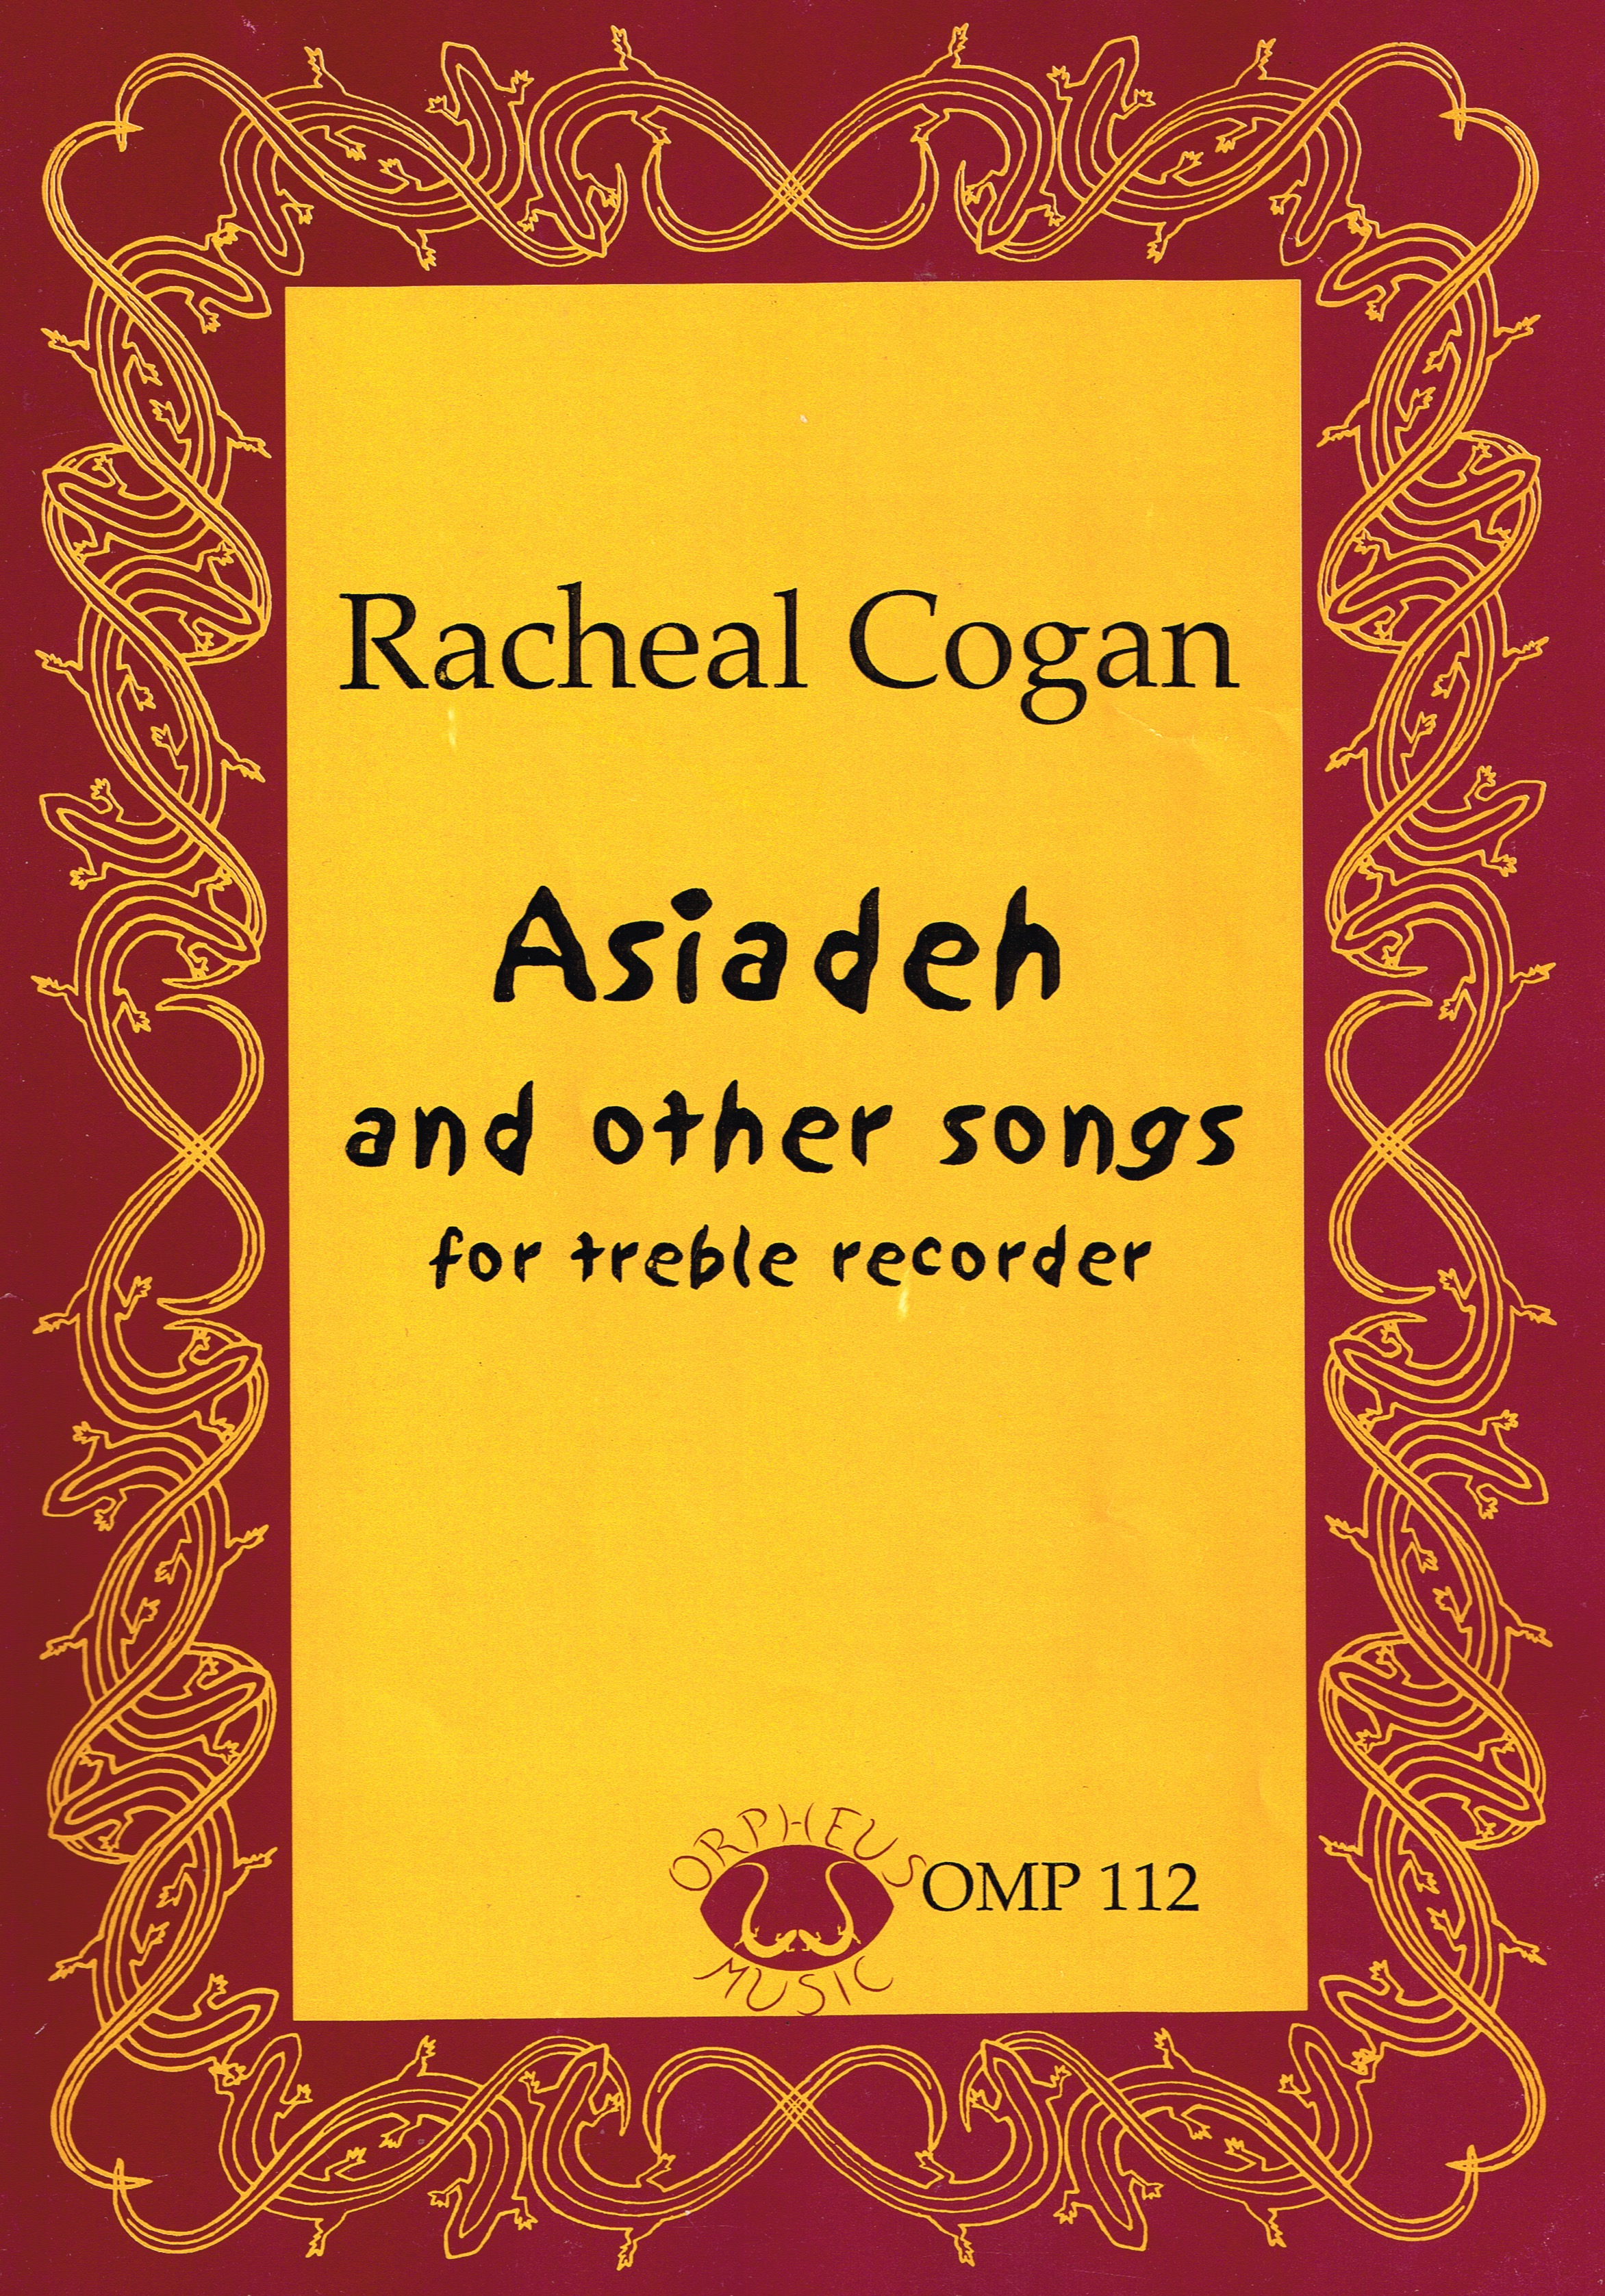 ASIADEH AND OTHER SONGS For treble recorder. Available as a download and sheet music Orpheus Music, OMP 112 (2004).